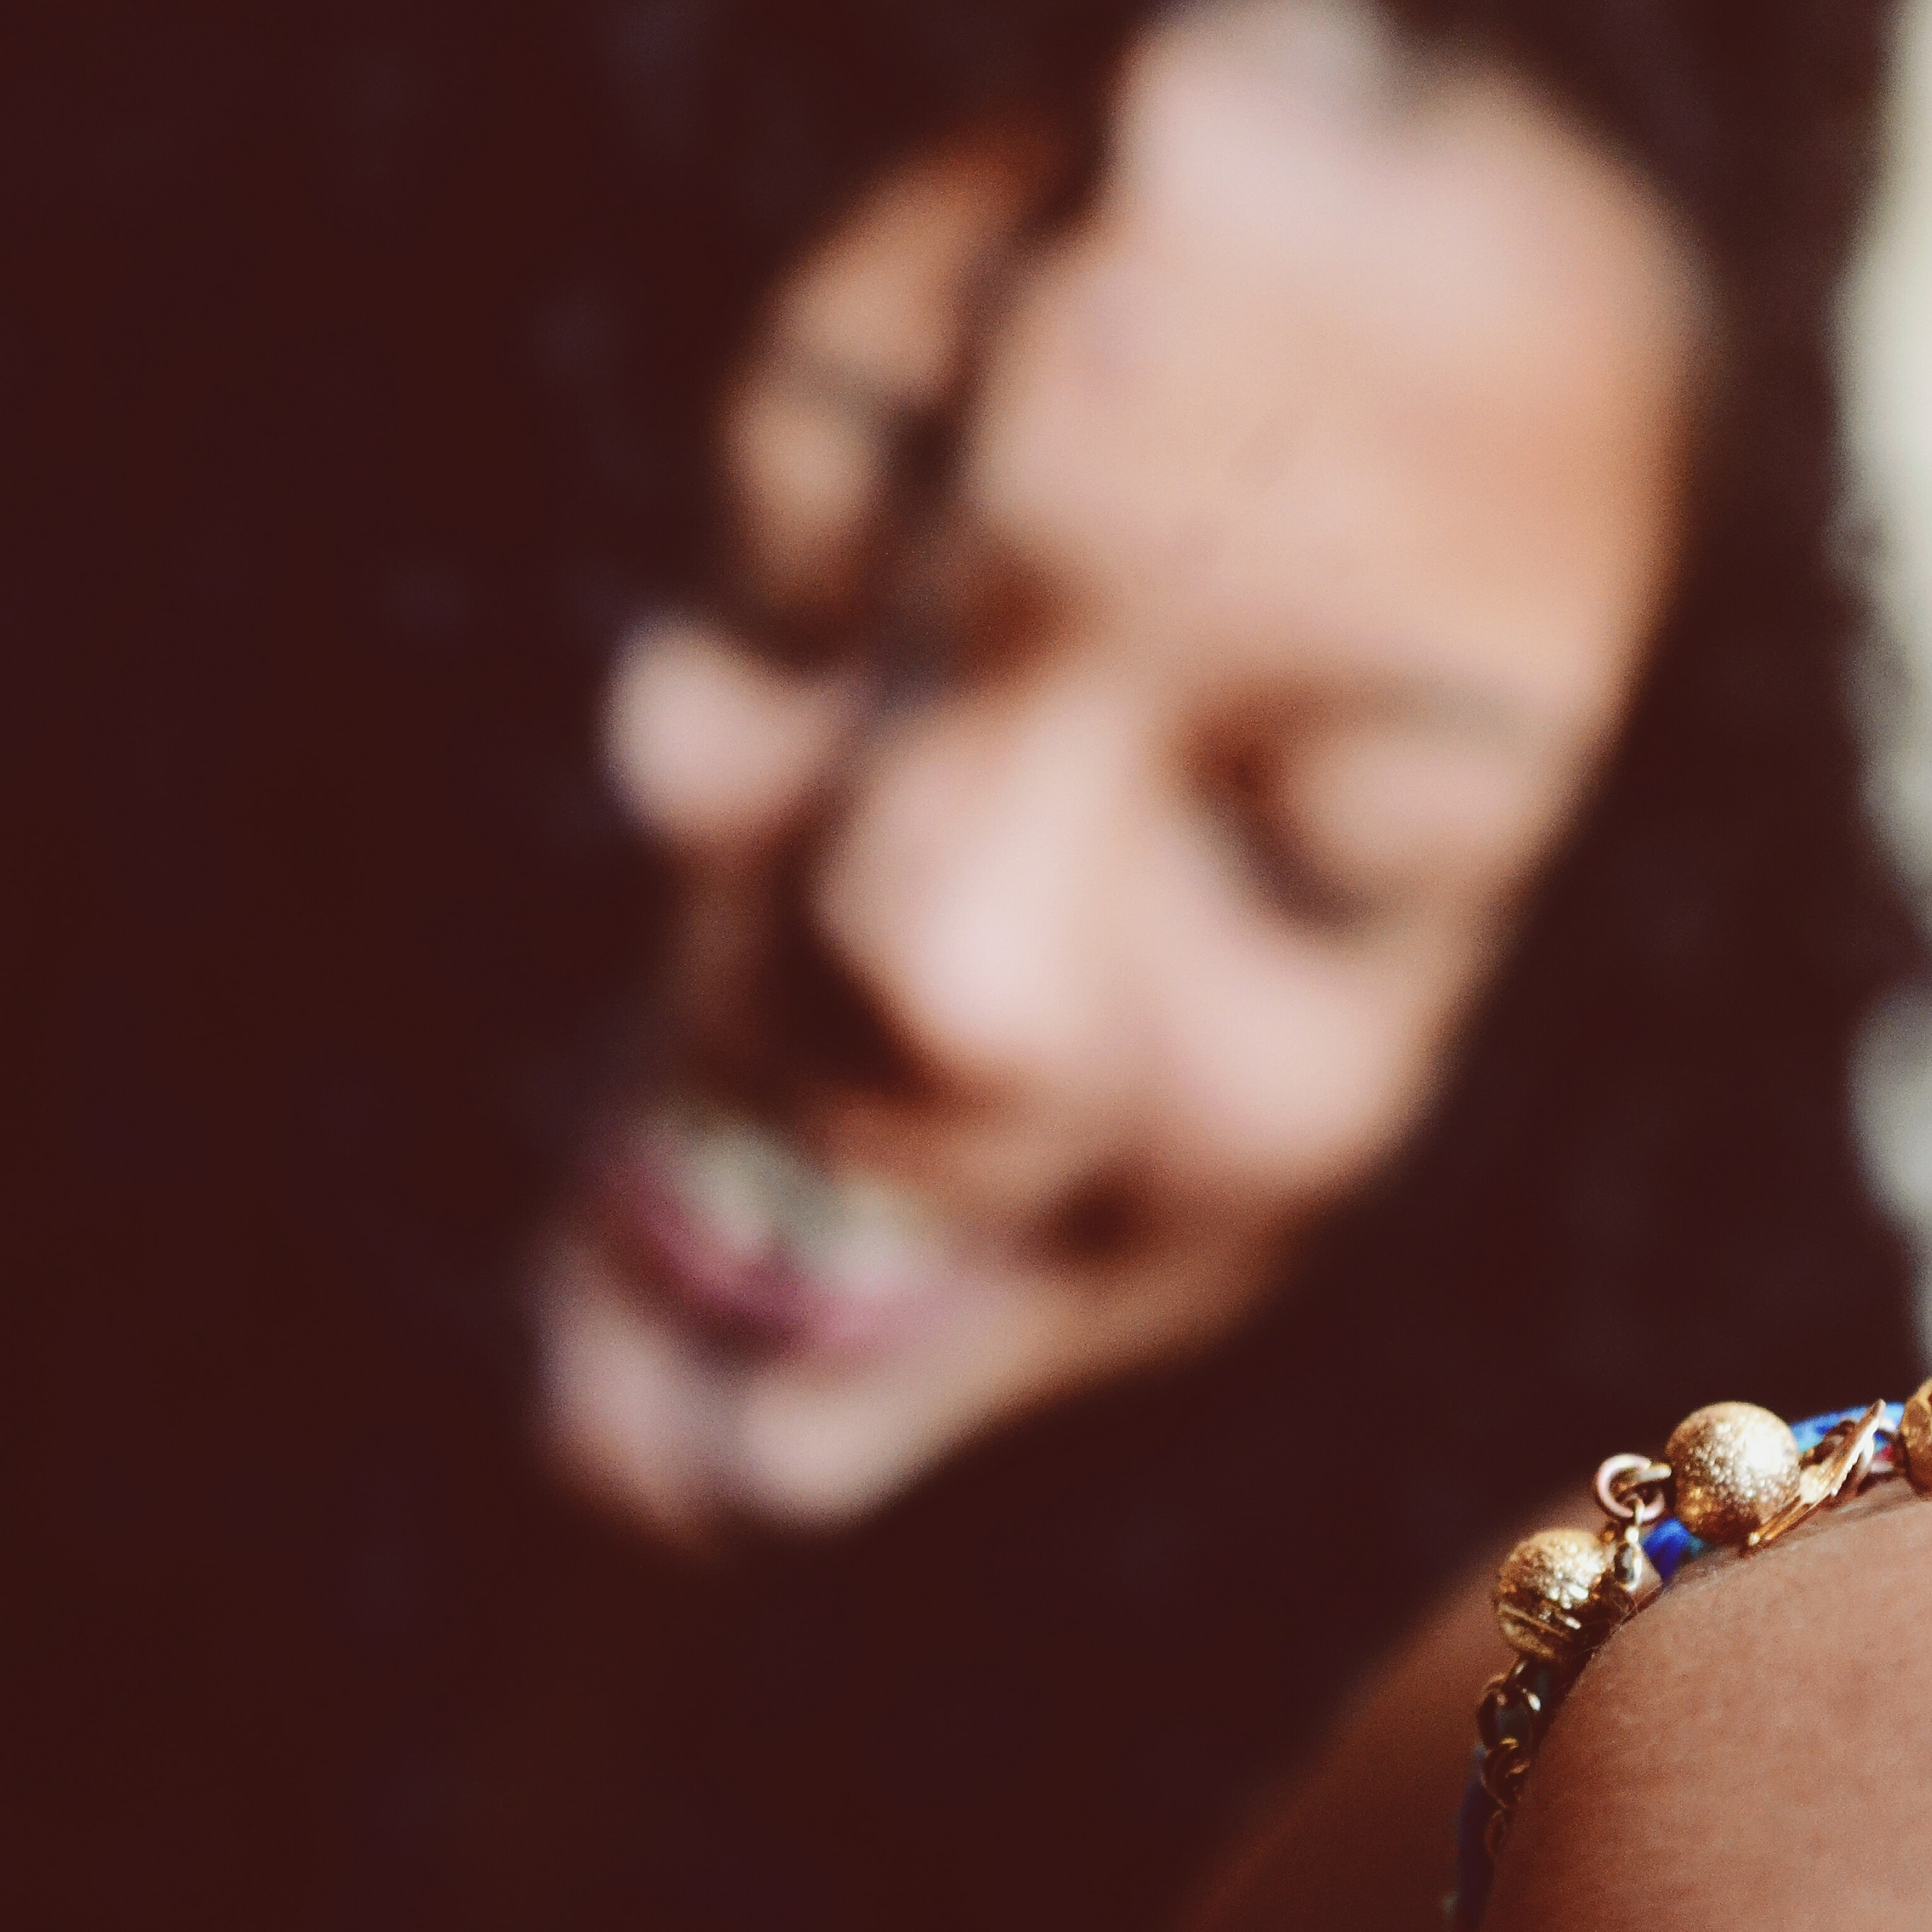 A smiling woman with a blurred face holding forward a bracelet on her wrist